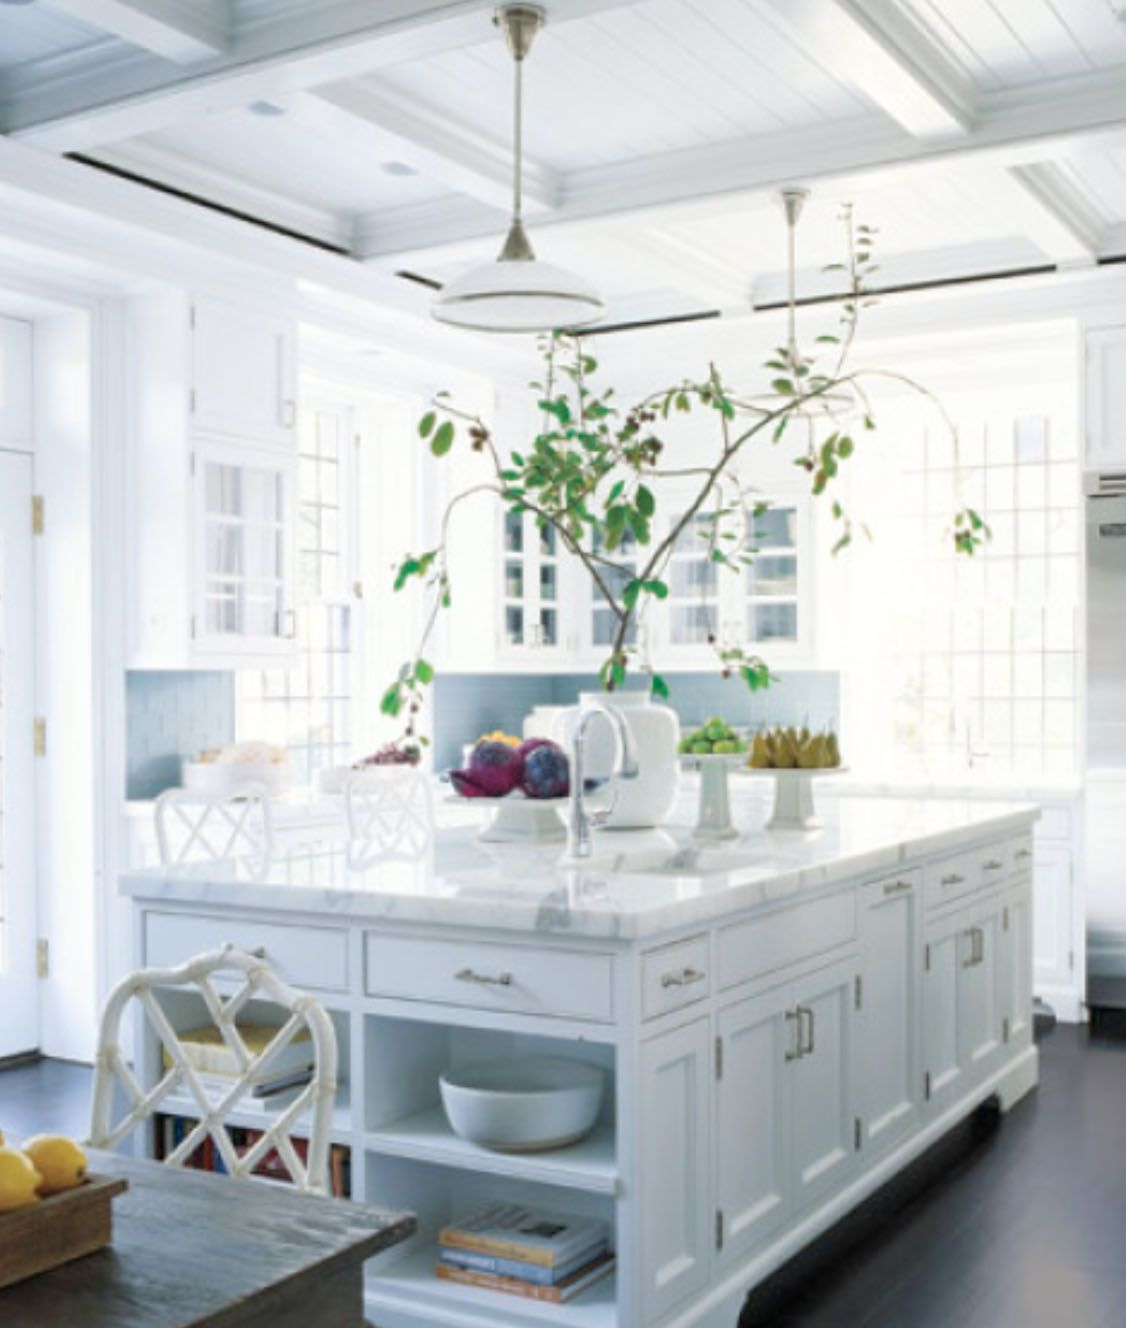 Kitchen Decoration With Waste Material: Home Decor, Kitchen